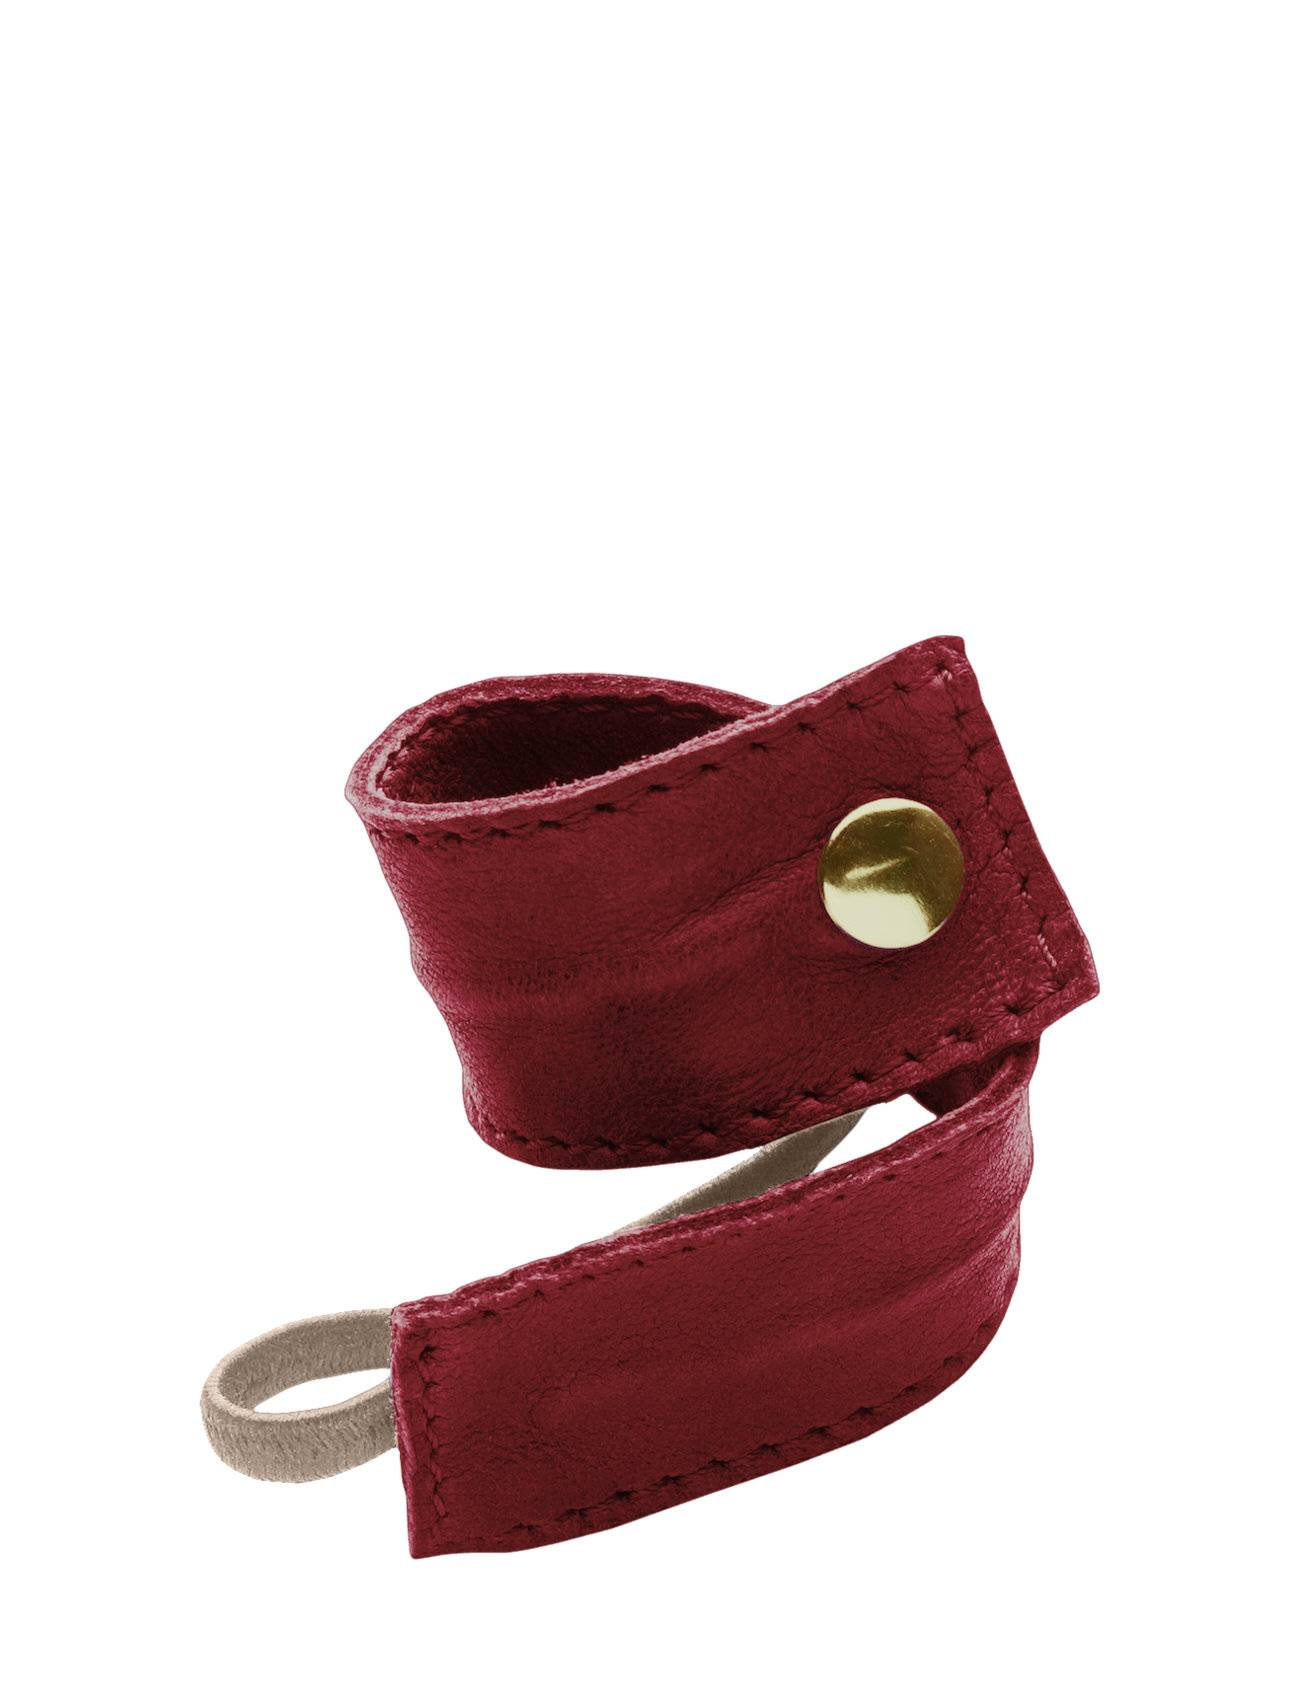 Image of Corinne Leather Band Short Bendable Beauty WOMEN Hair Hair Accessories Punainen Corinne